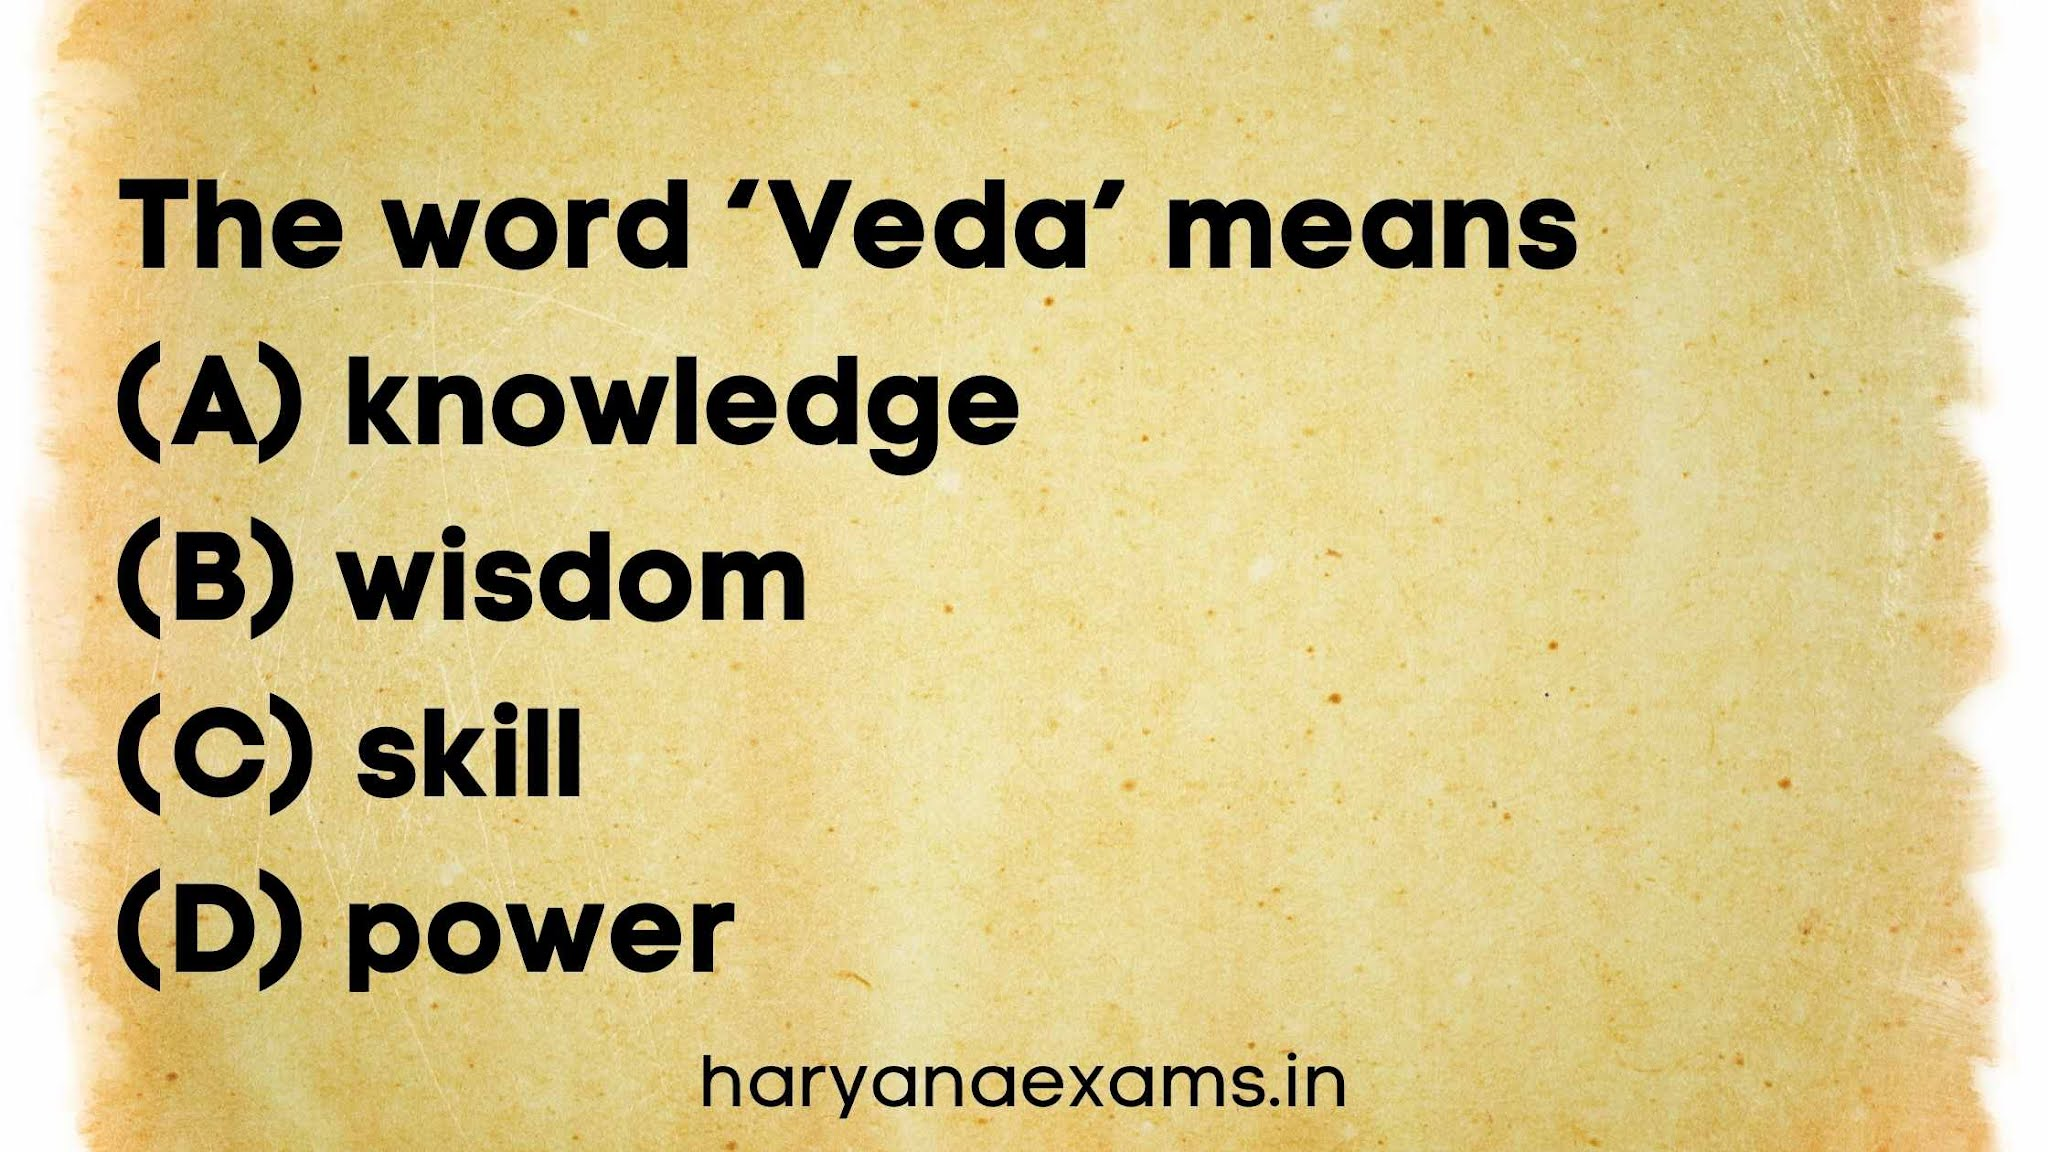 The word 'Veda' means   (A) knowledge   (B) wisdom   (C) skill   (D) power